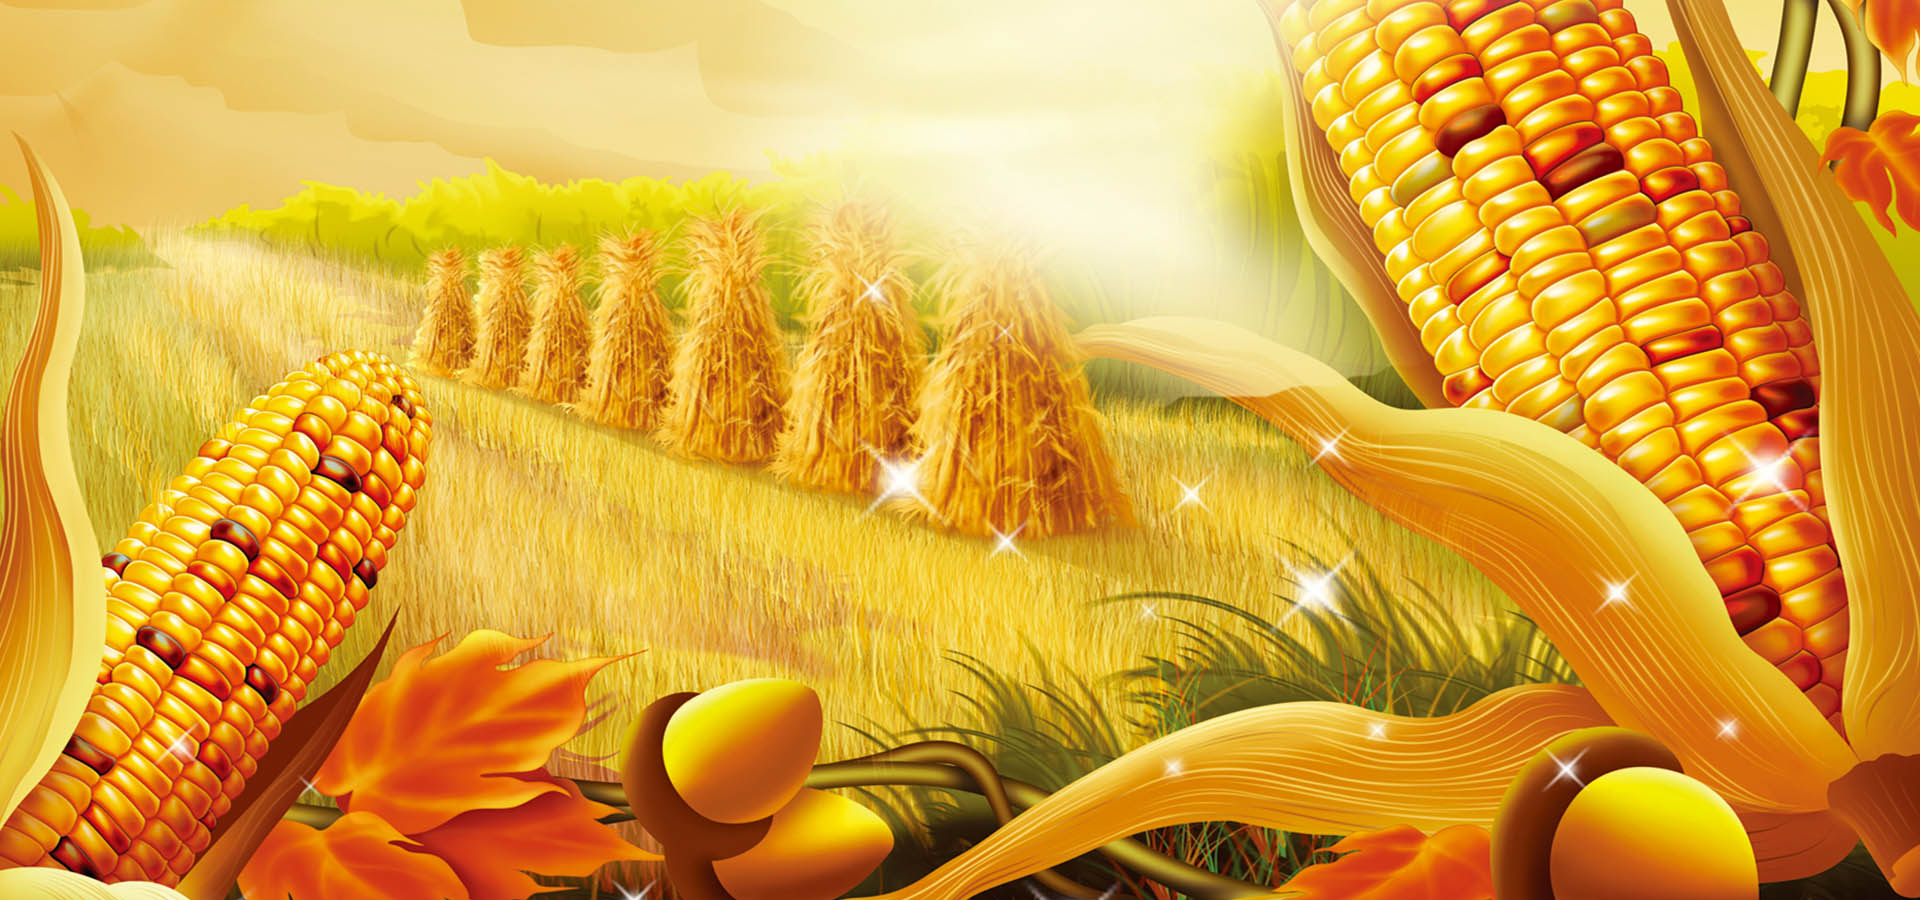 autumn corn background  autumn  corn  grass background image for free download